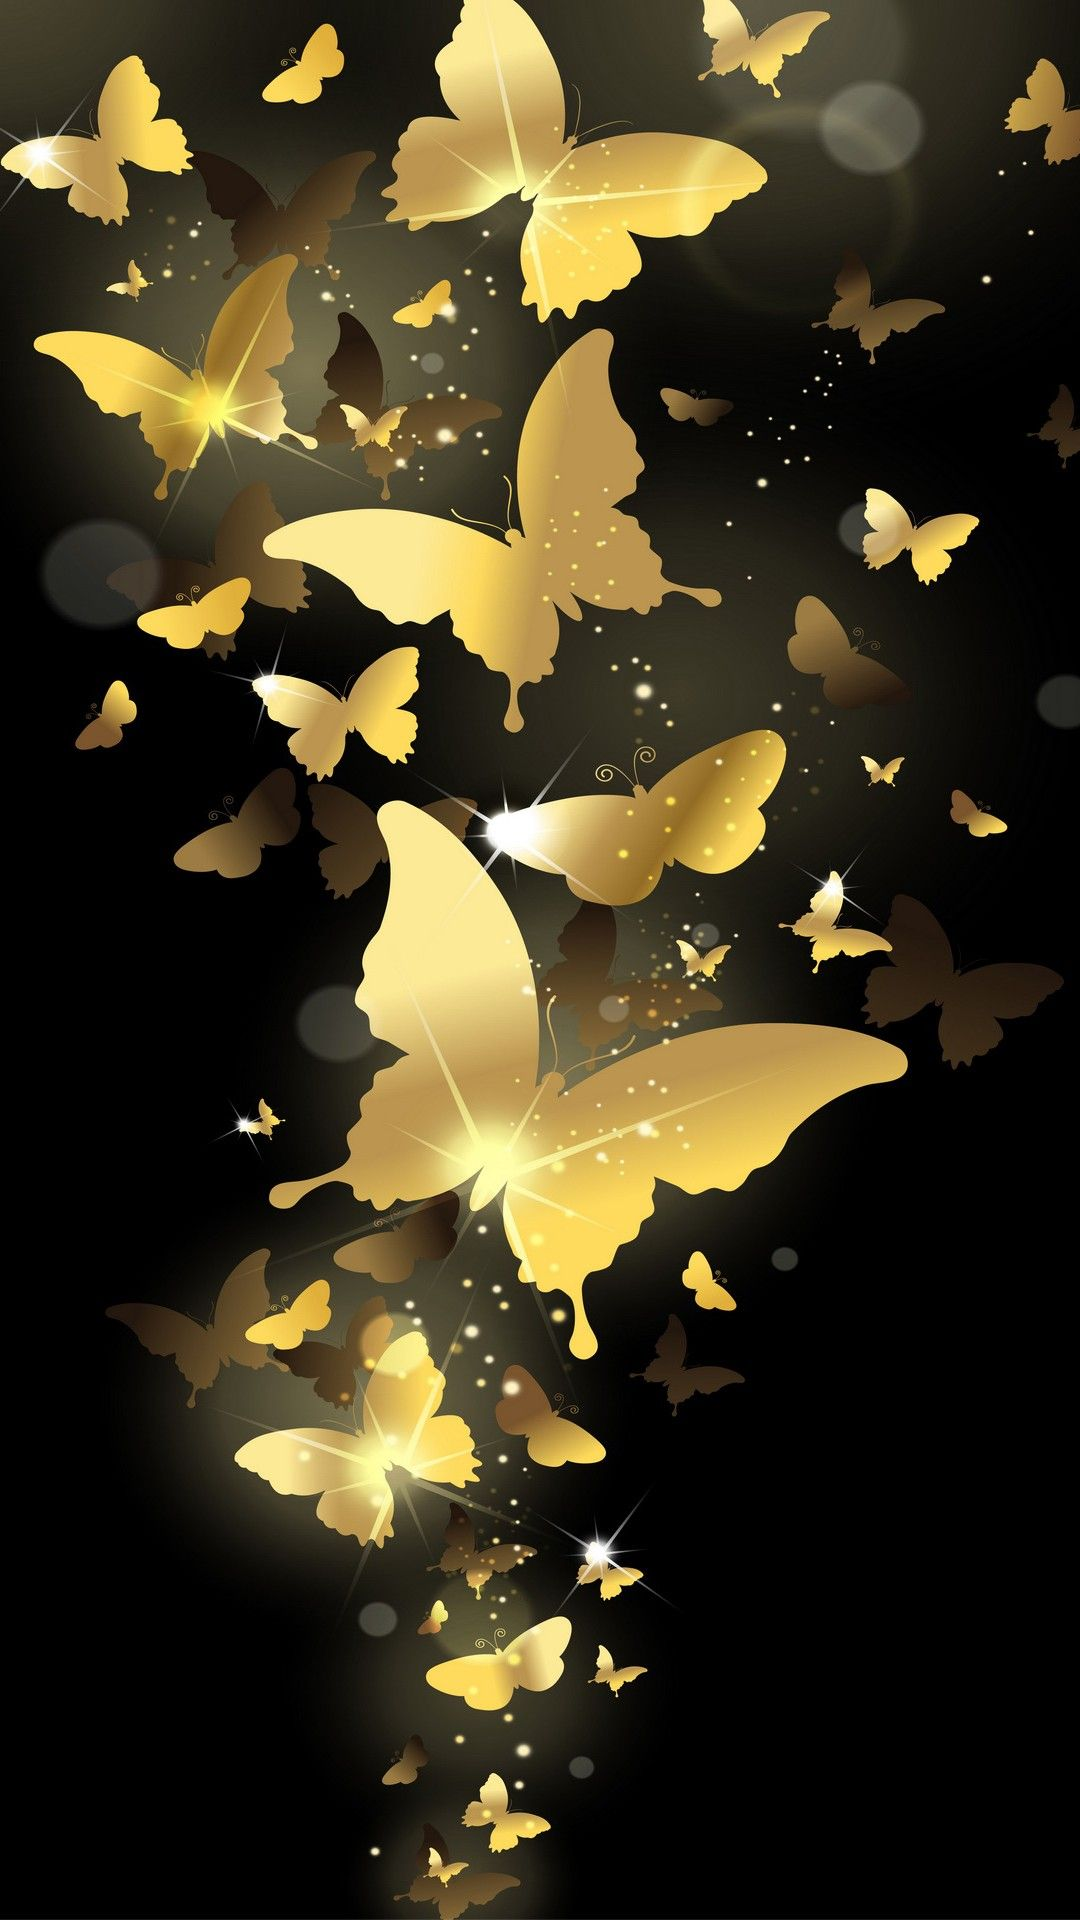 人気105位 Illustrations Iphone 6 Plus Wallpapers Flying Golden Butterflies Lockscreen Iphone 6 Plus Hd Wallpaper Illustrations Iphone 6 蝶の壁紙 Iphone6 壁紙 金色 壁紙